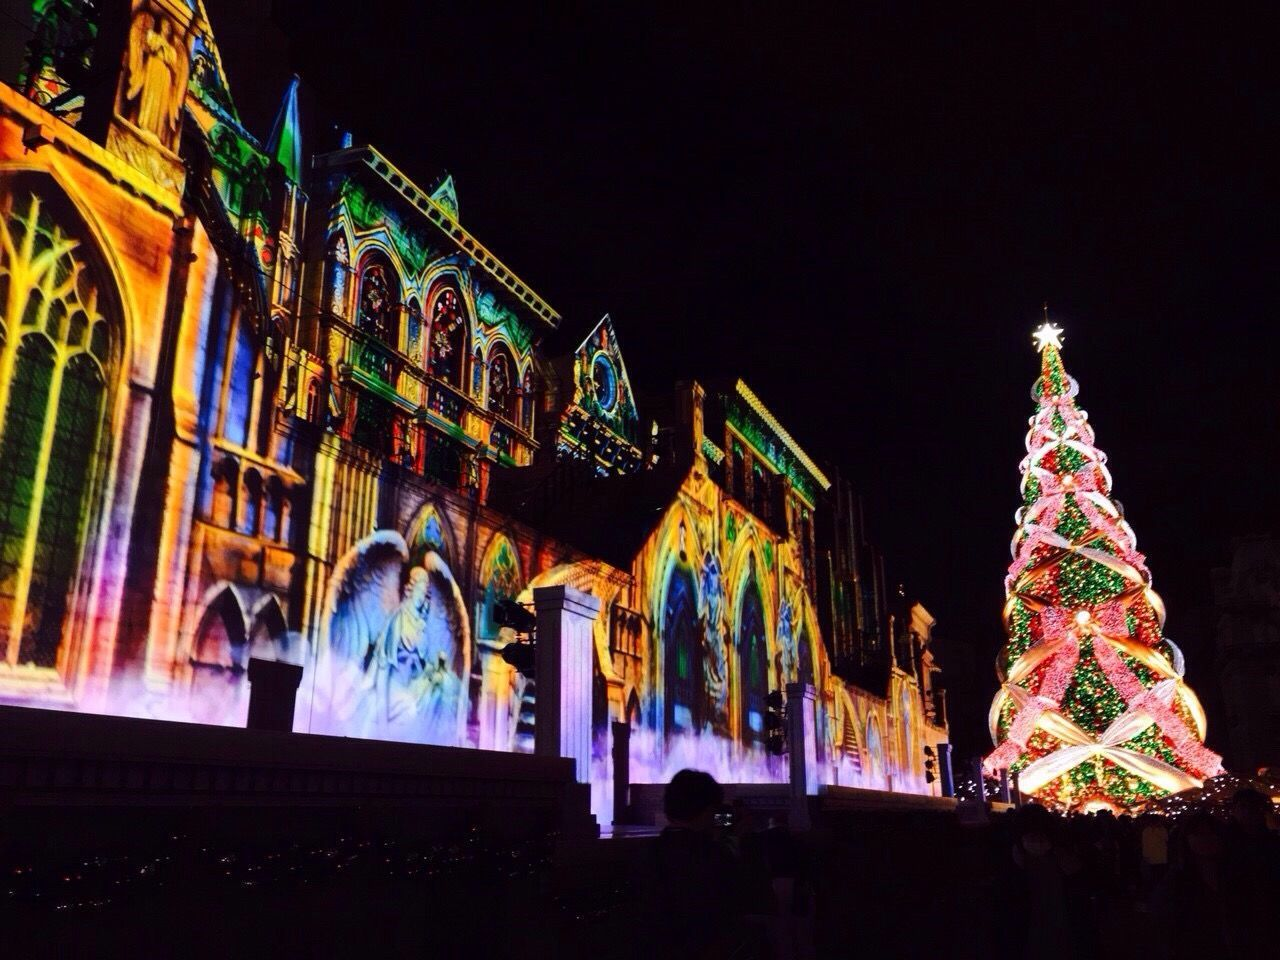 Night Illuminated Low Angle View Celebration Christmas Building Exterior Architecture Christmas Tree Universal Studios Japan 2015  No People Multi Colored Christmas Decoration